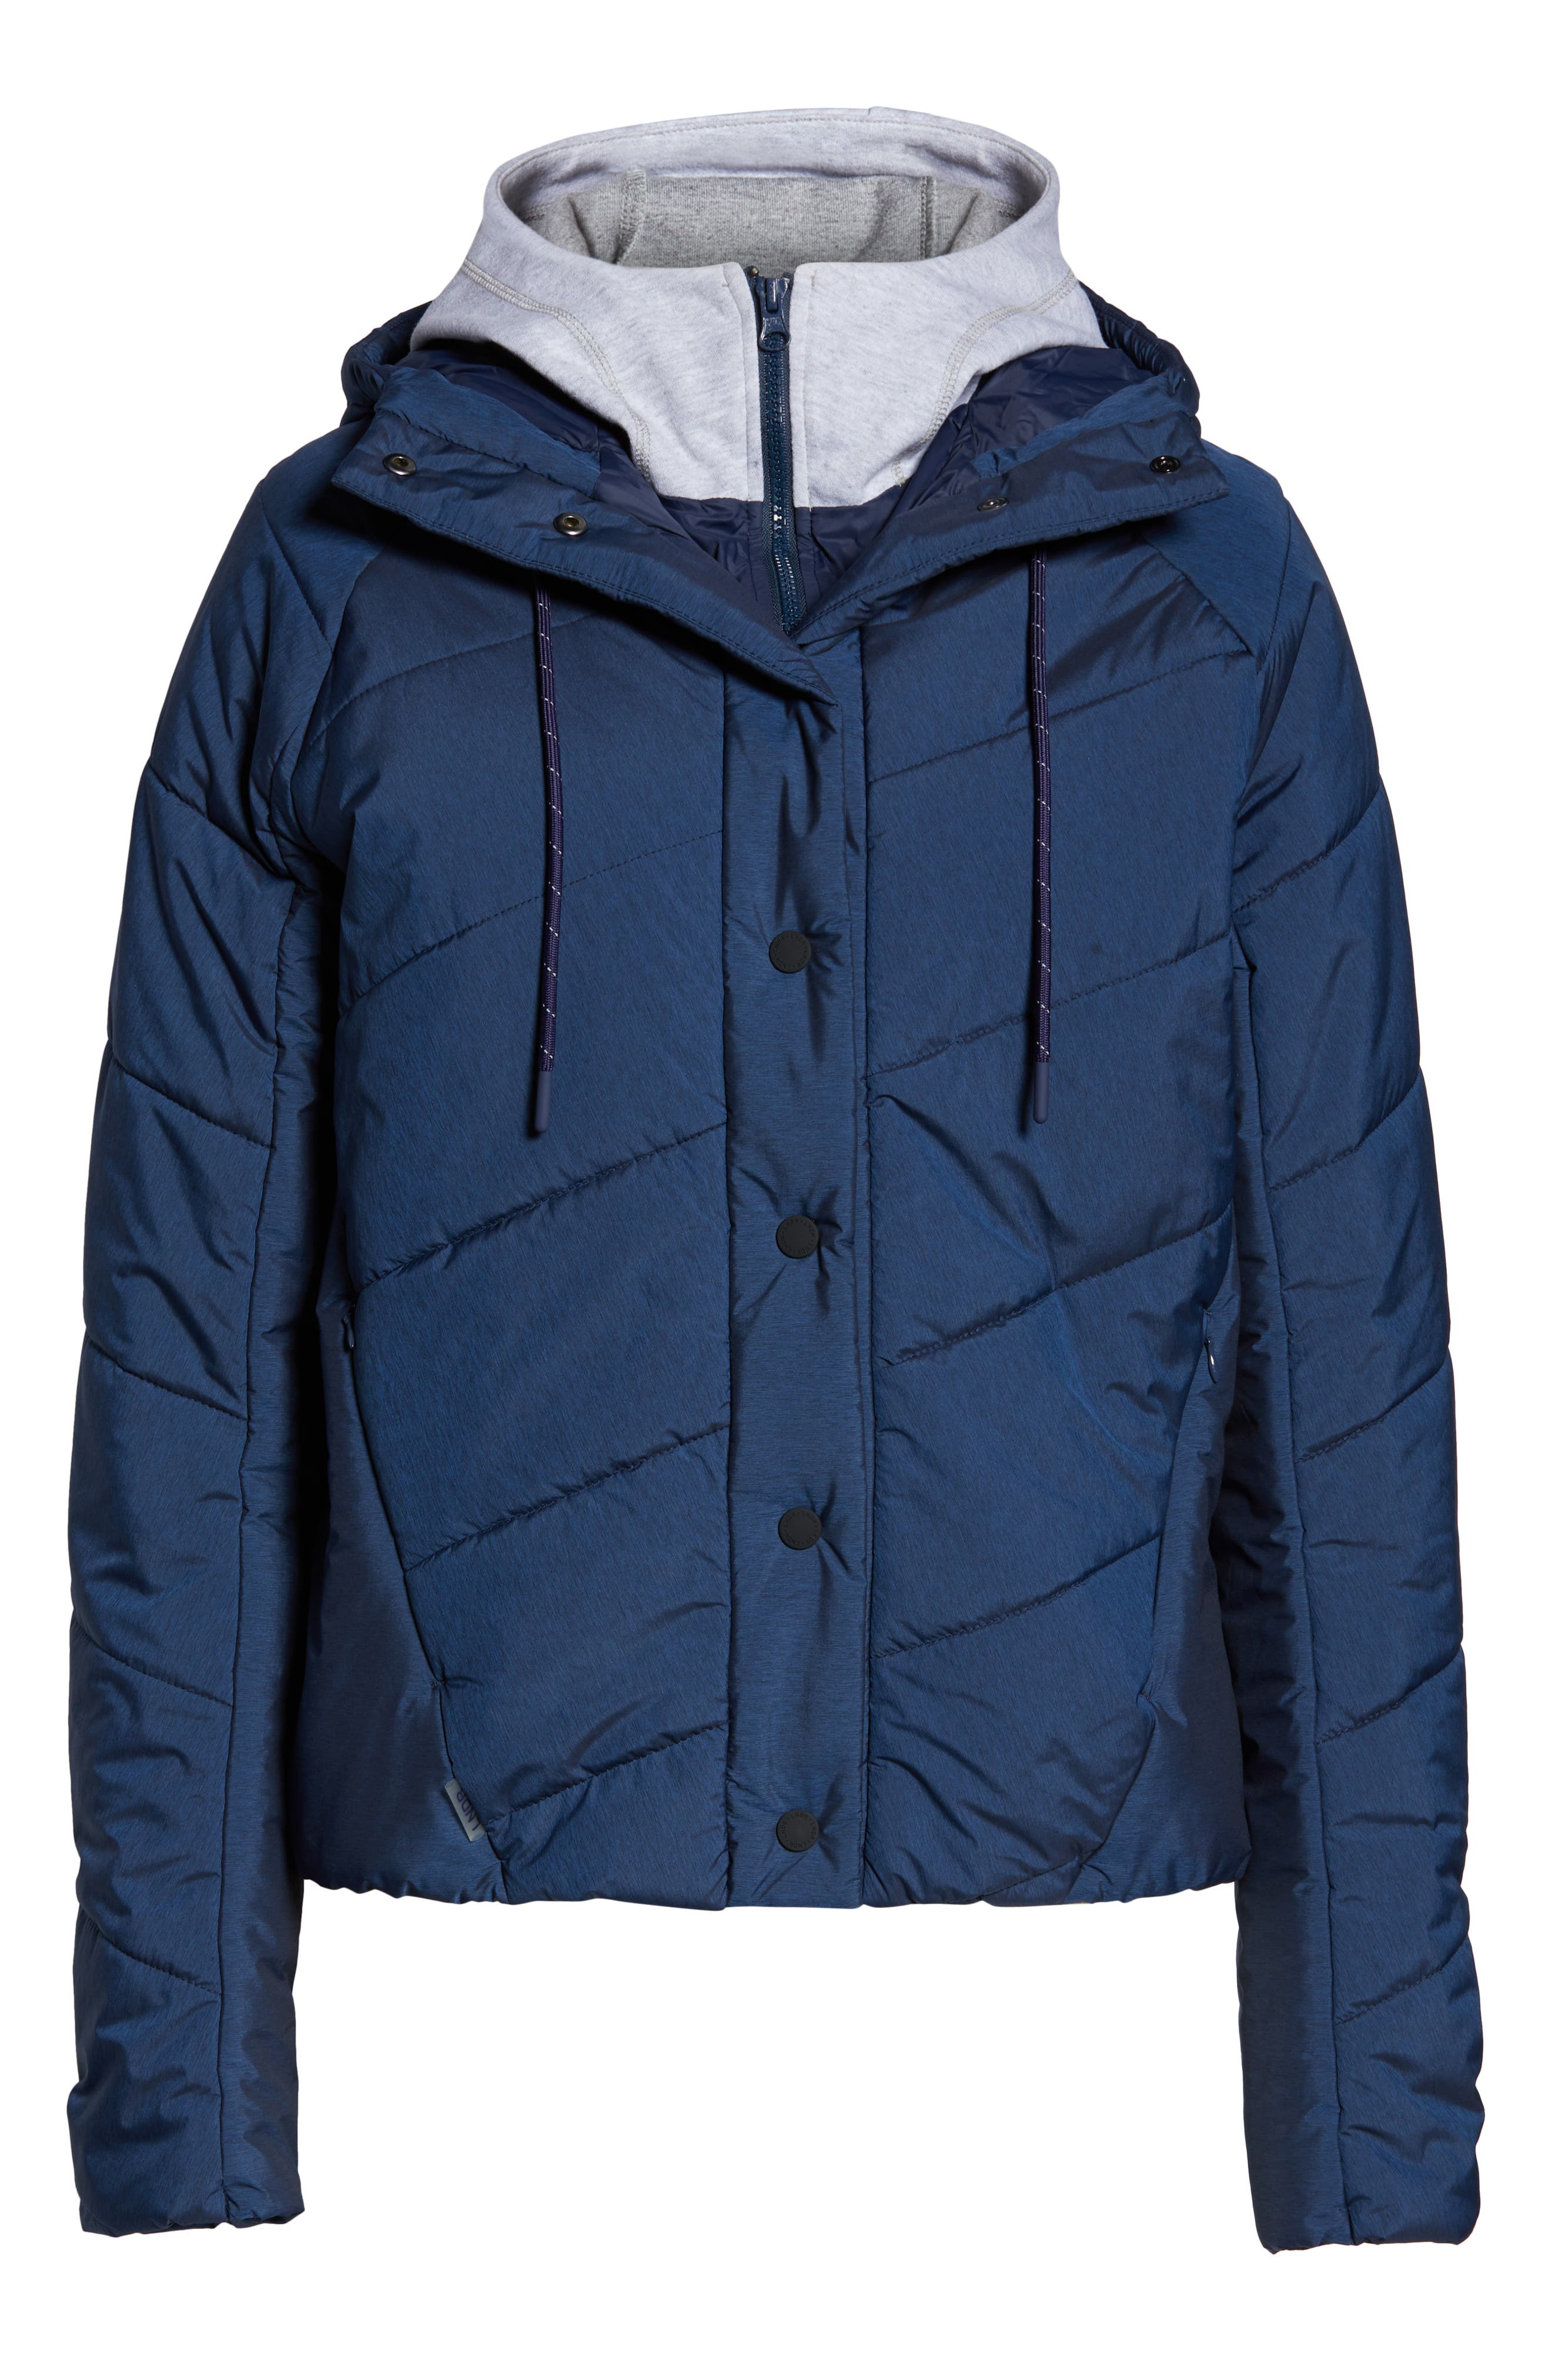 Toast Water Repellent Hooded Jacket,                             Alternate thumbnail 6, color,                             NAVY MARL